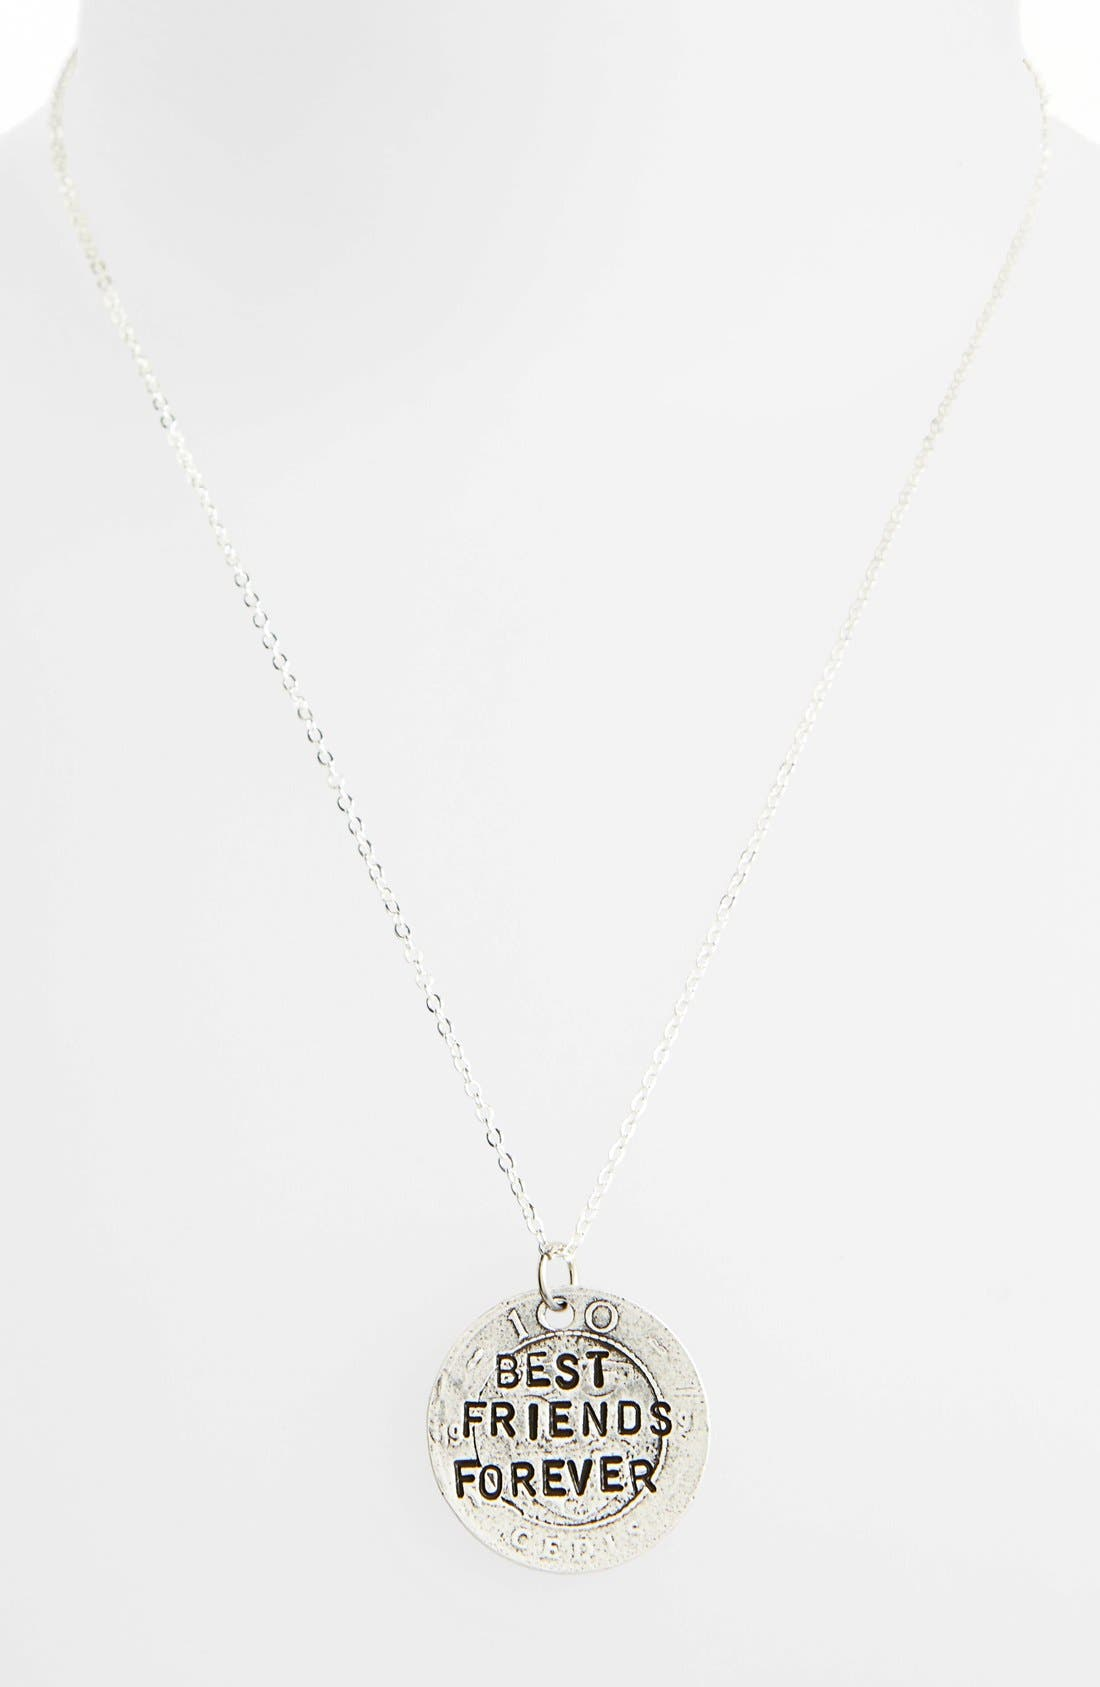 Main Image - Alisa Michelle Designs 'Best Friends Forever' Pendant Necklace